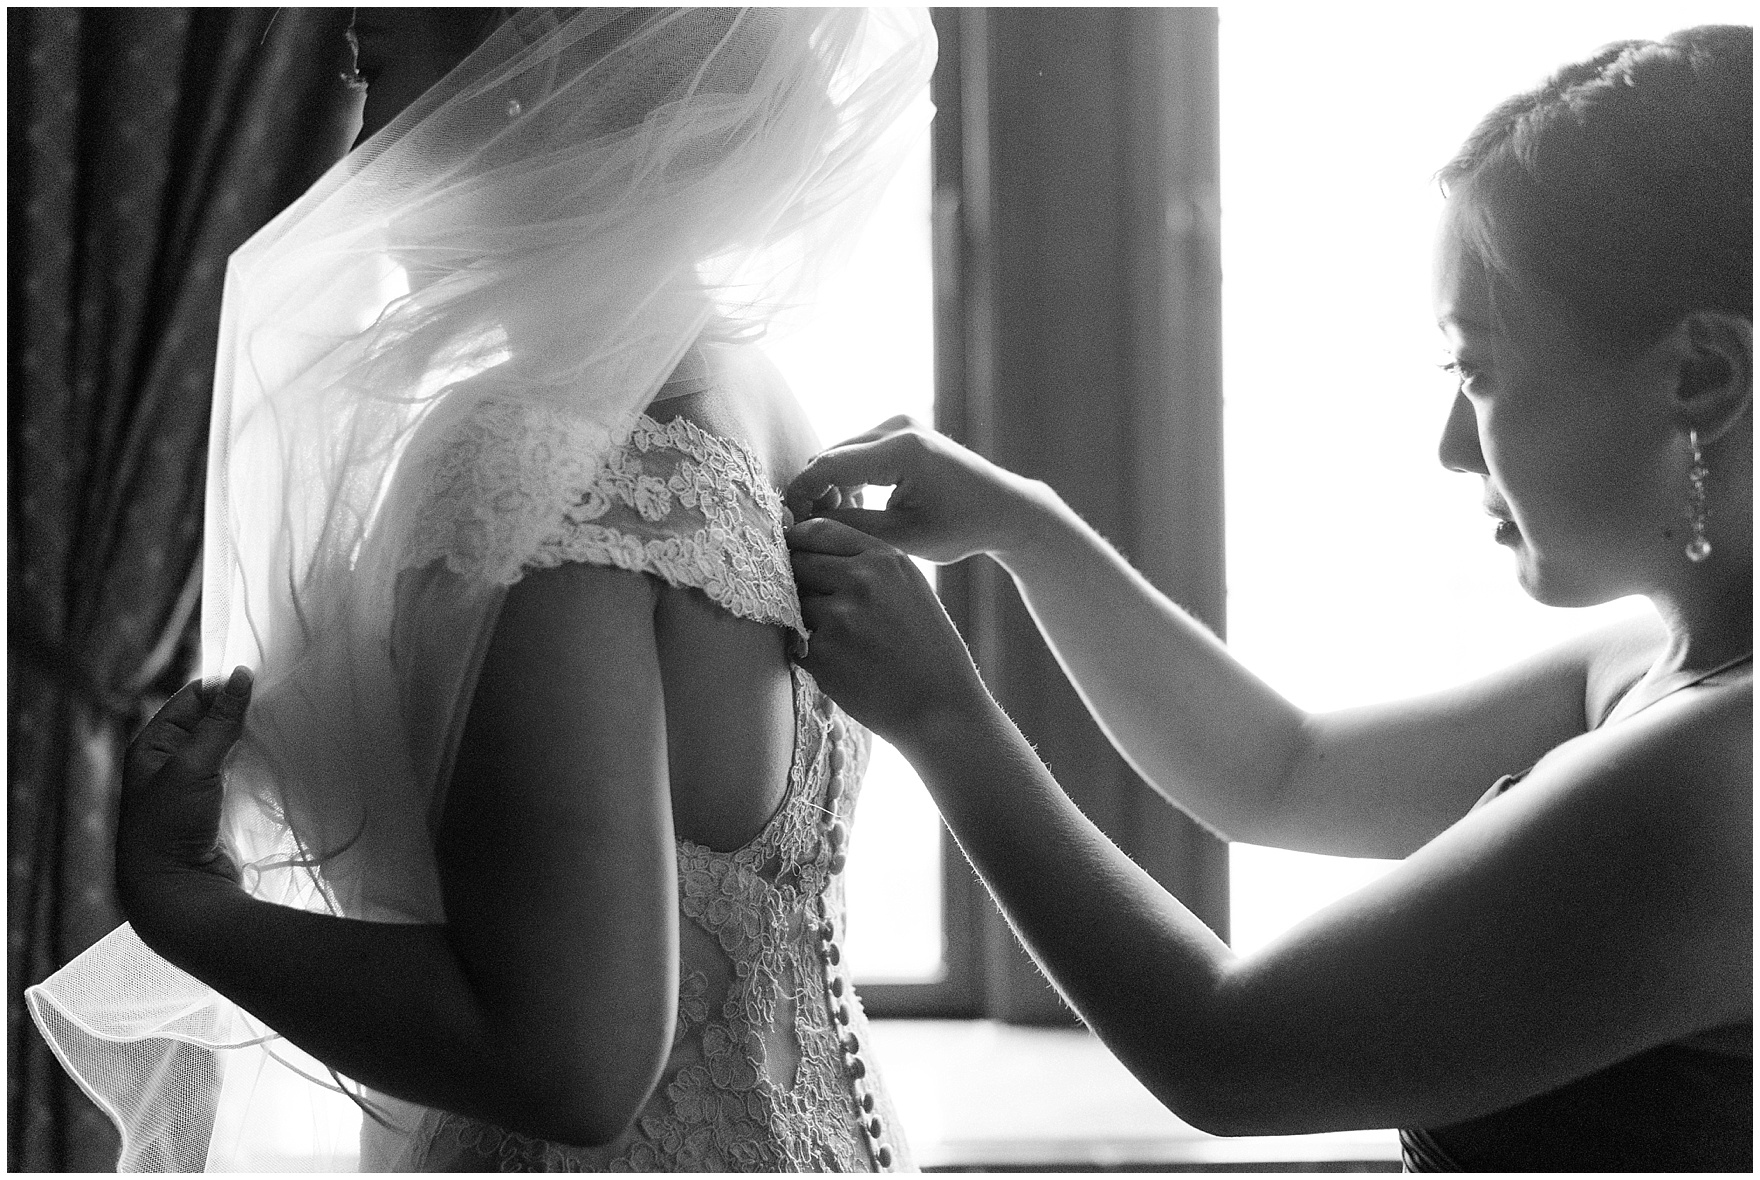 The bride gets buttoned into her lace gown for a University Club of Chicago wedding.